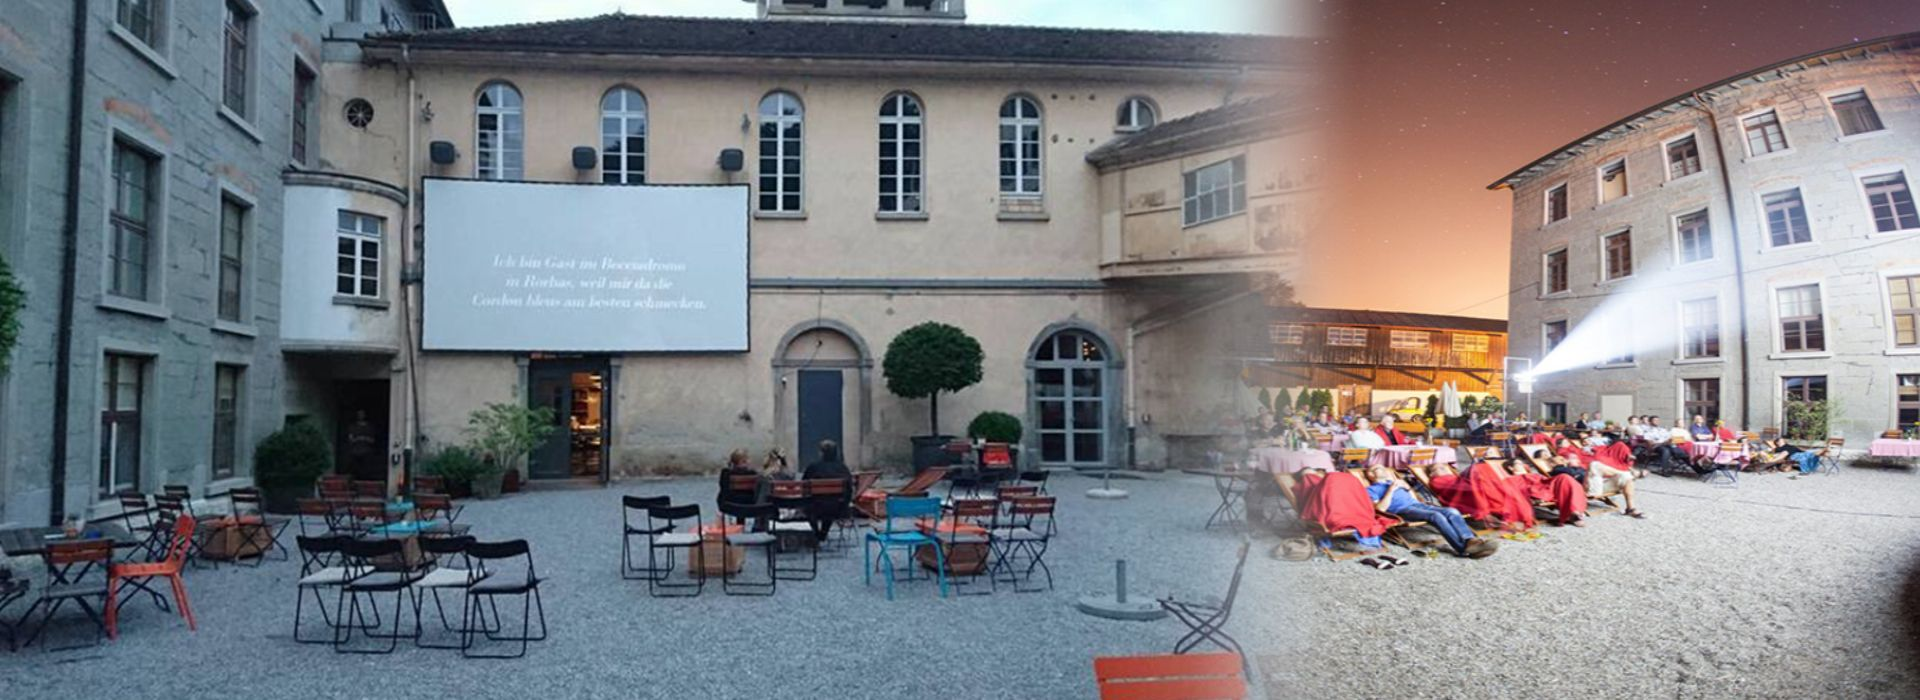 FS Multipurpose Horns Chosen for Outdoor Movie Theater in Switzerland